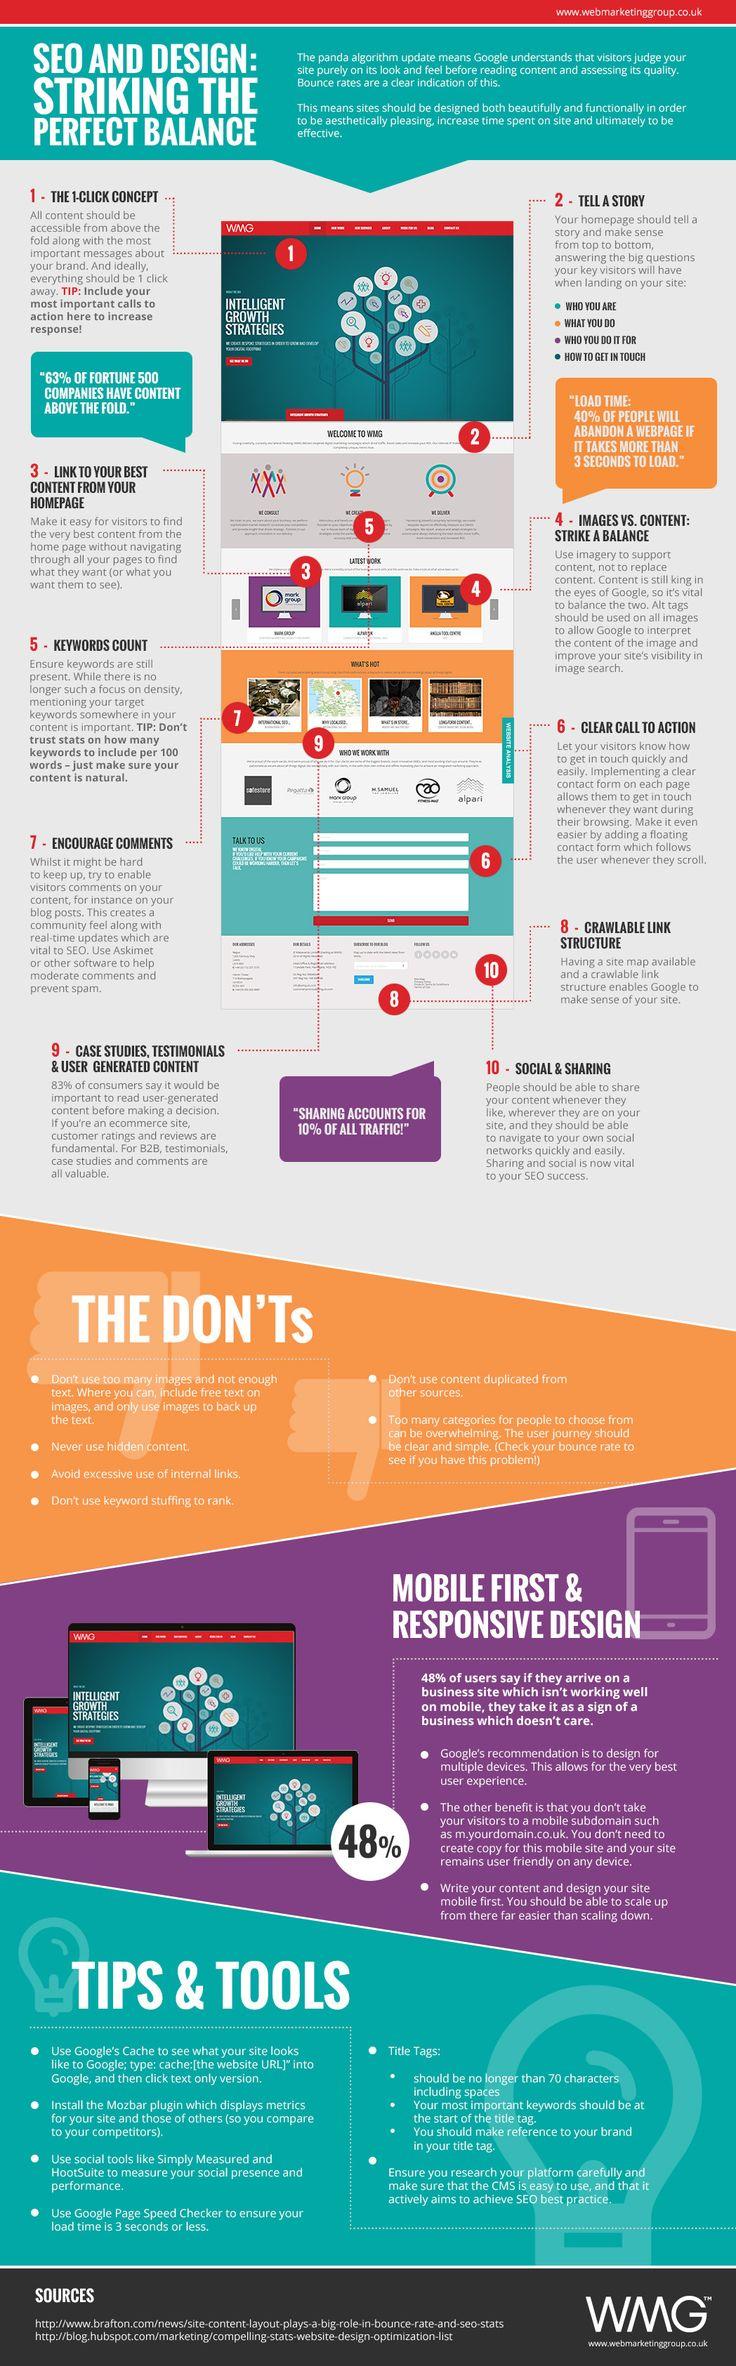 #SEO And Design: Striking the Perfect Balance - #infographic